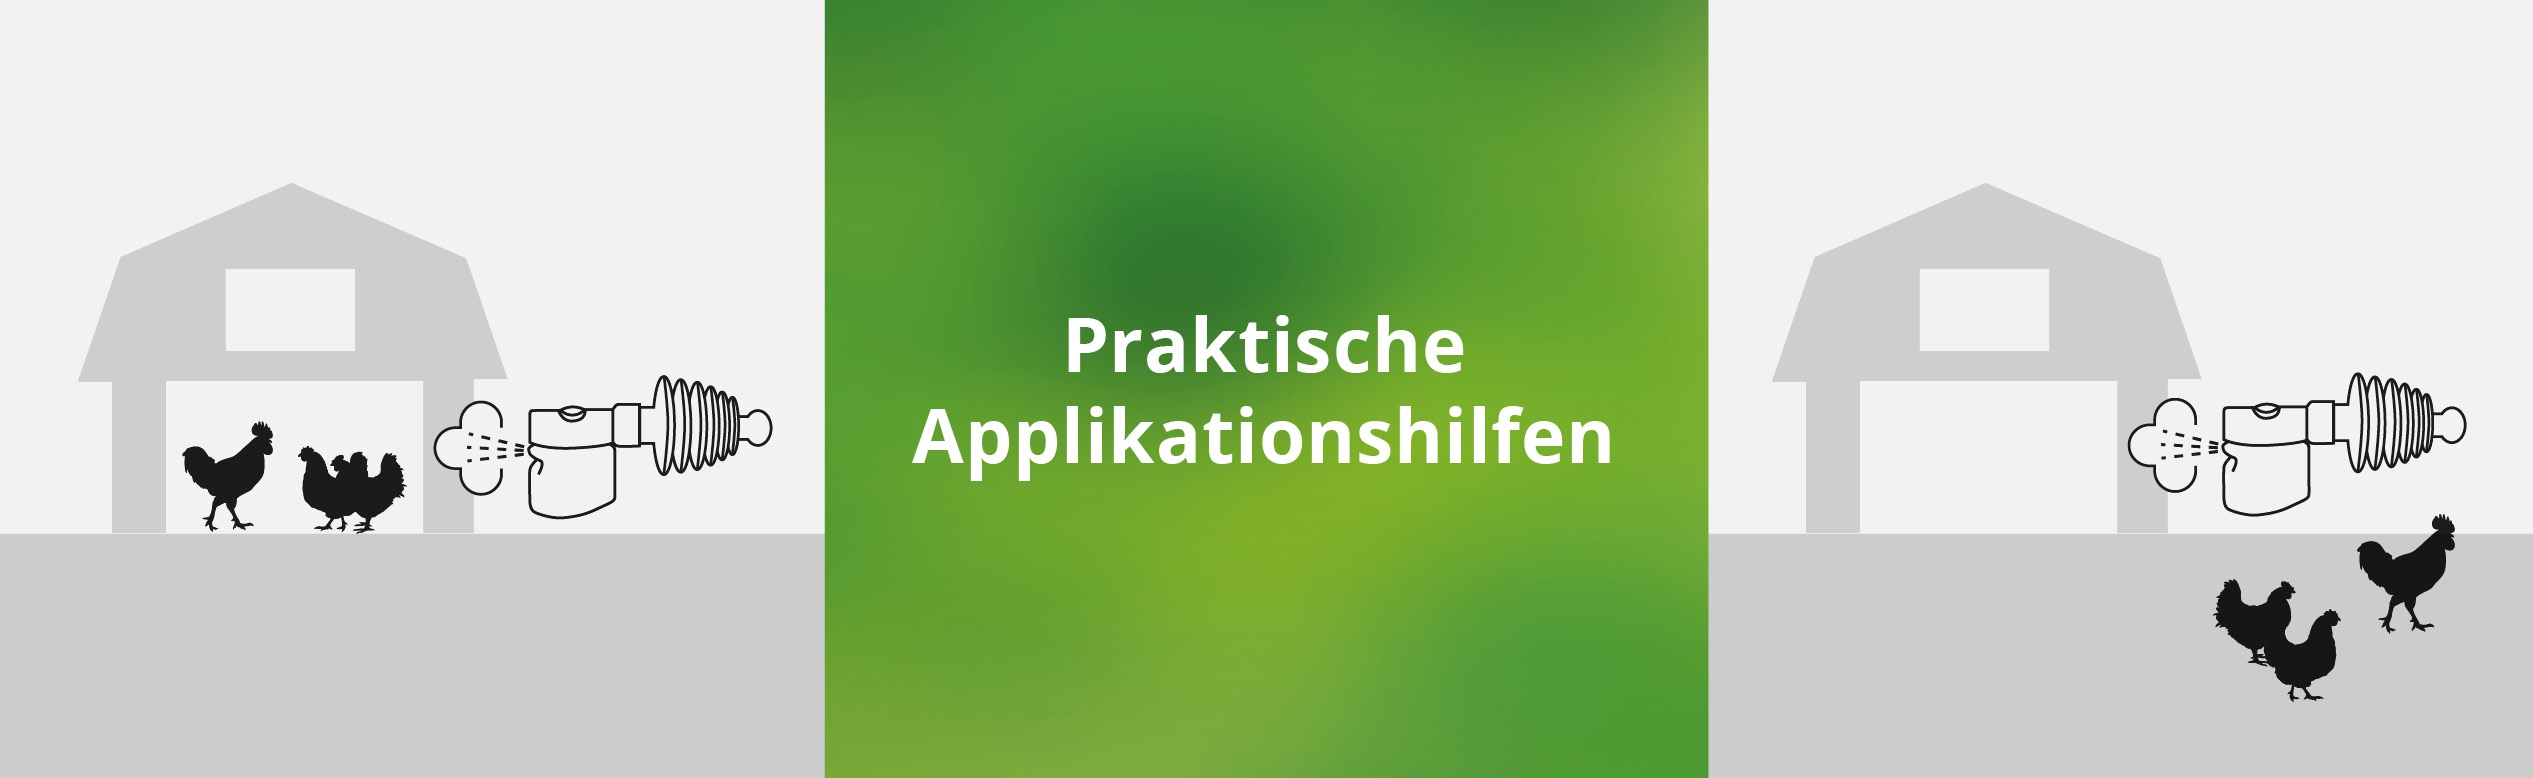 Applikationstechnik